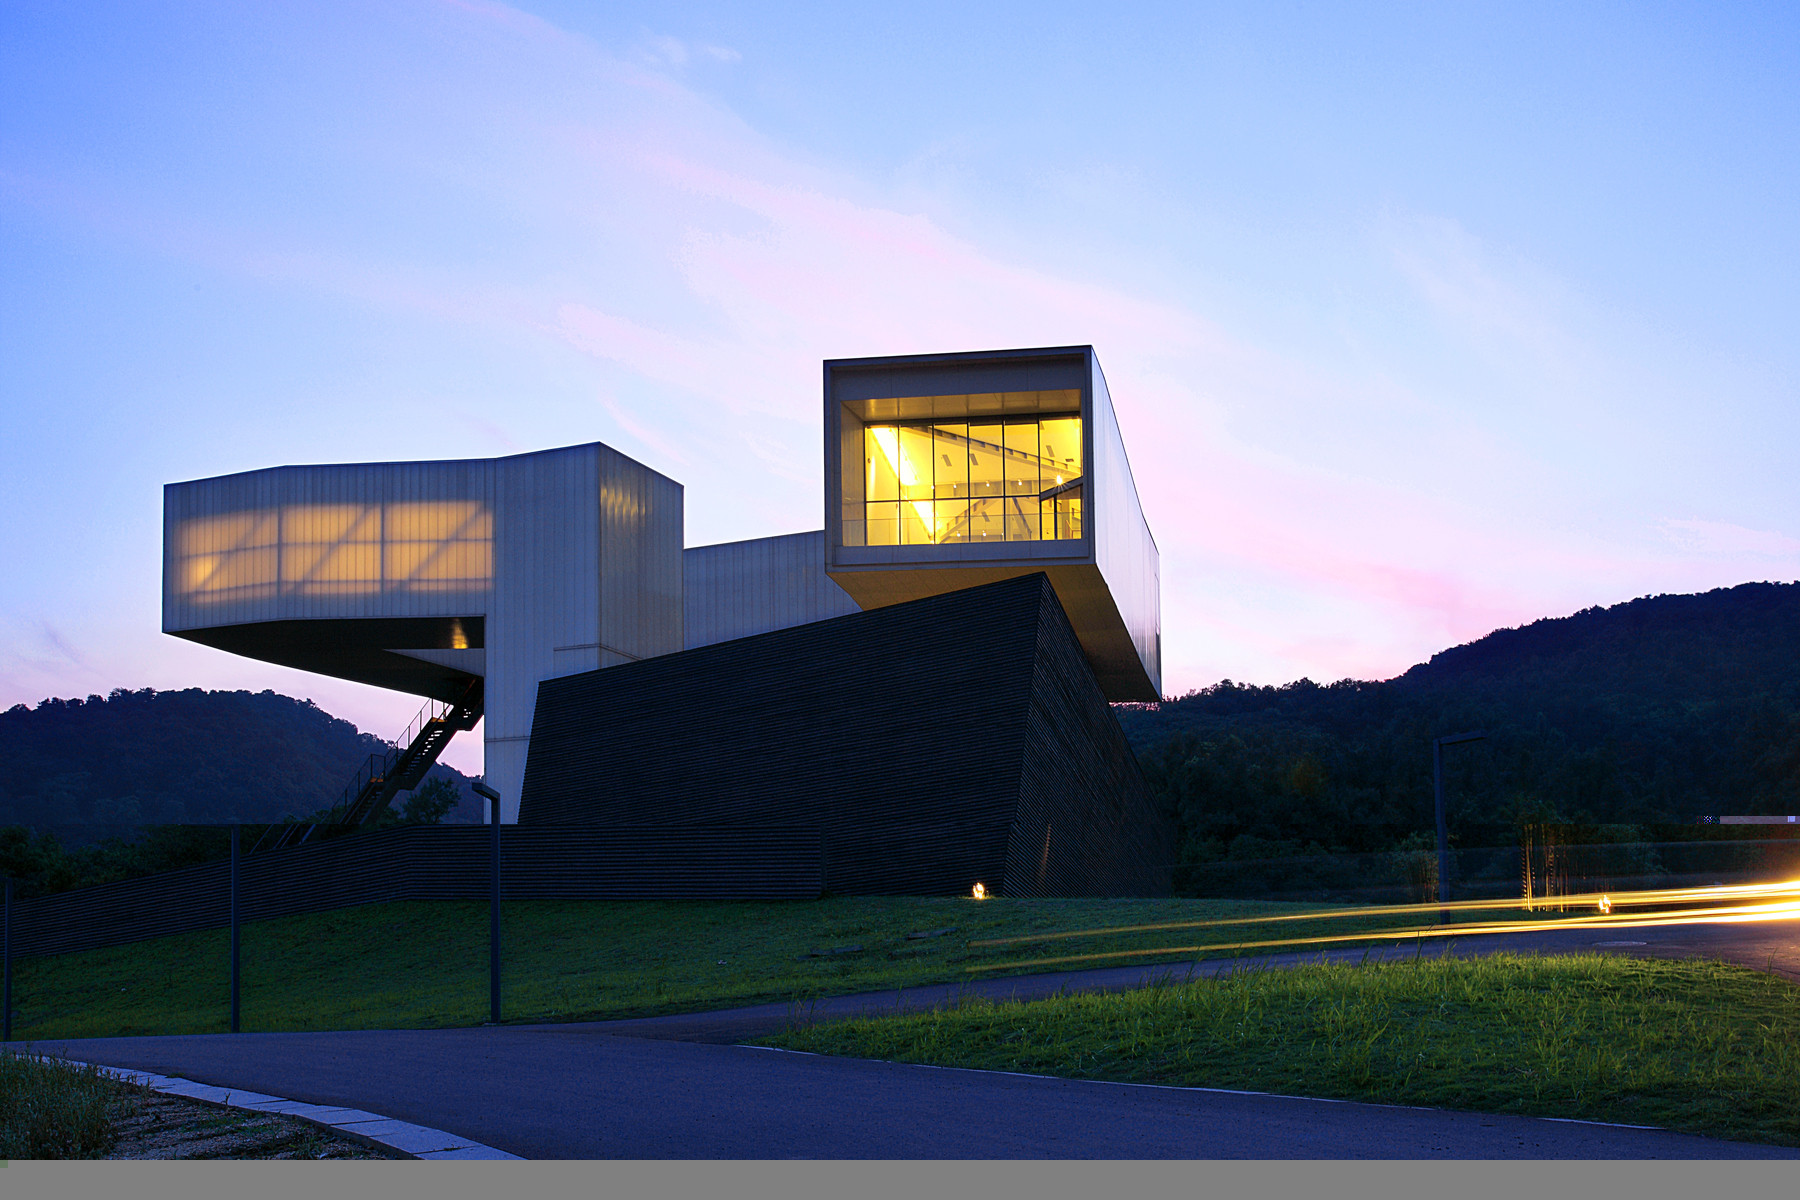 BBC Ranks Eight Greatest New Museums, Nanjing's Sifang Art Museum / Steven Holl Architects. Image © Sifang Art Museum